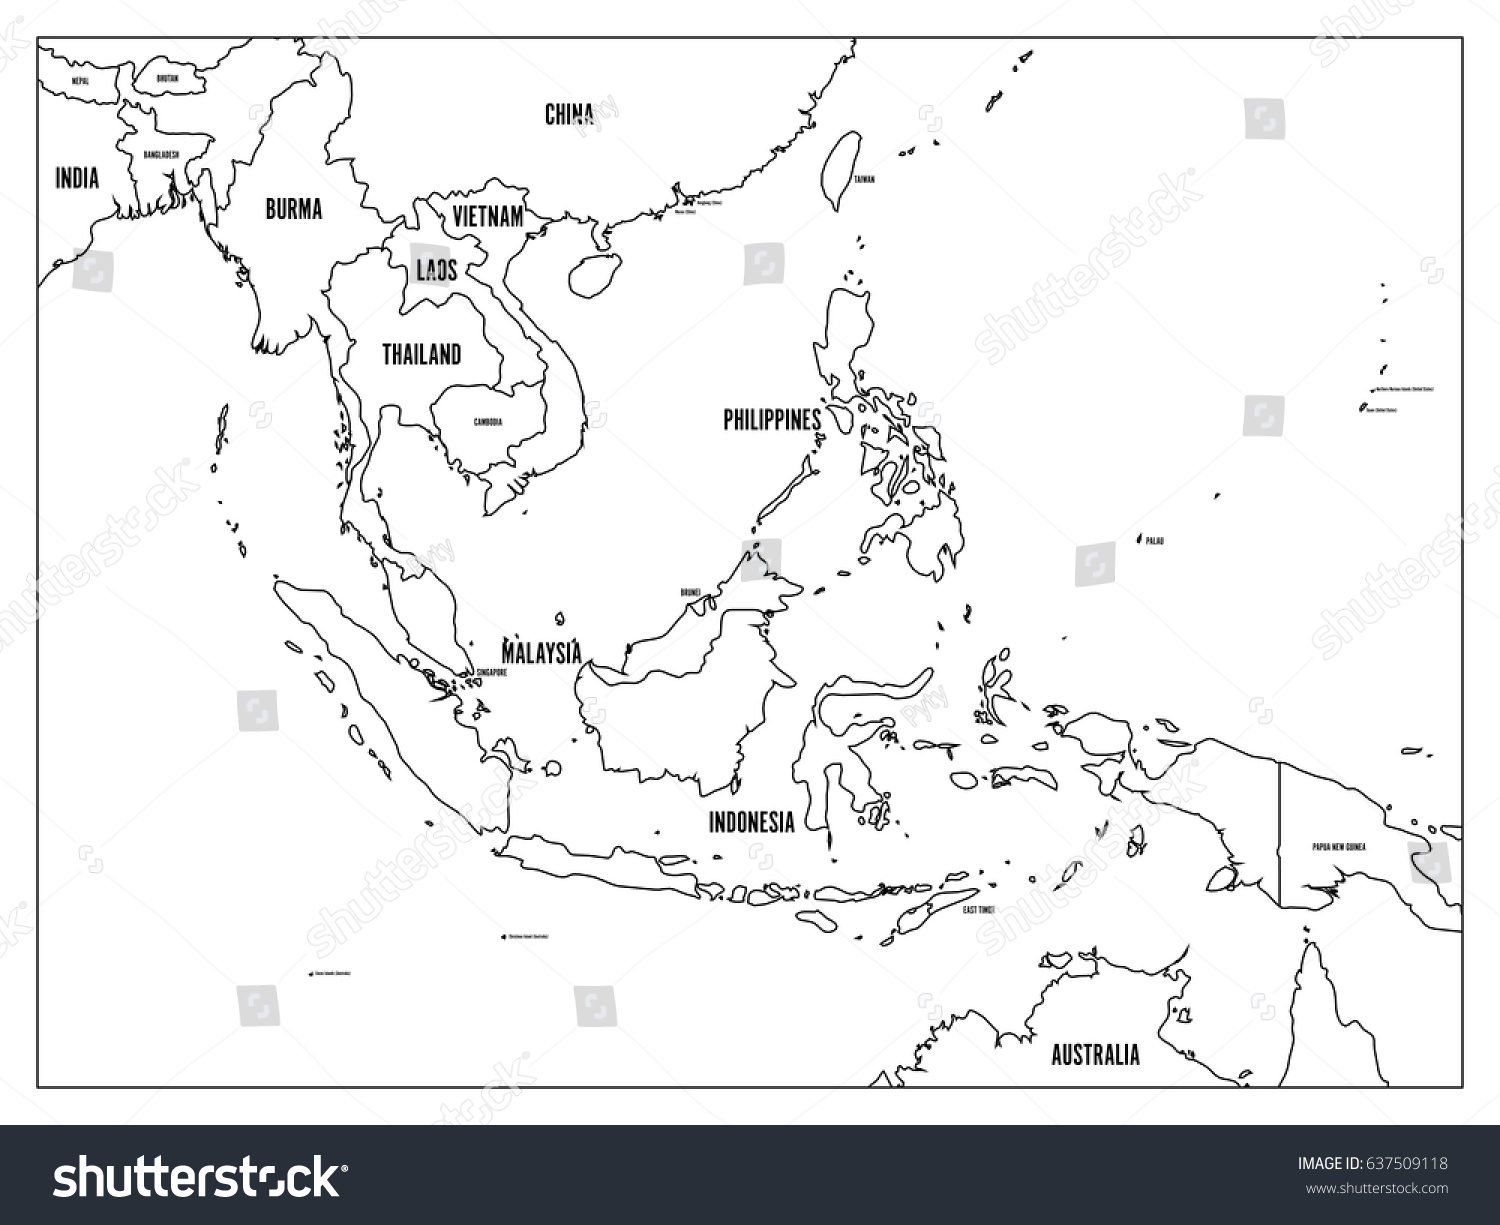 South East Asia Political Map Black Stock Vector 637509118